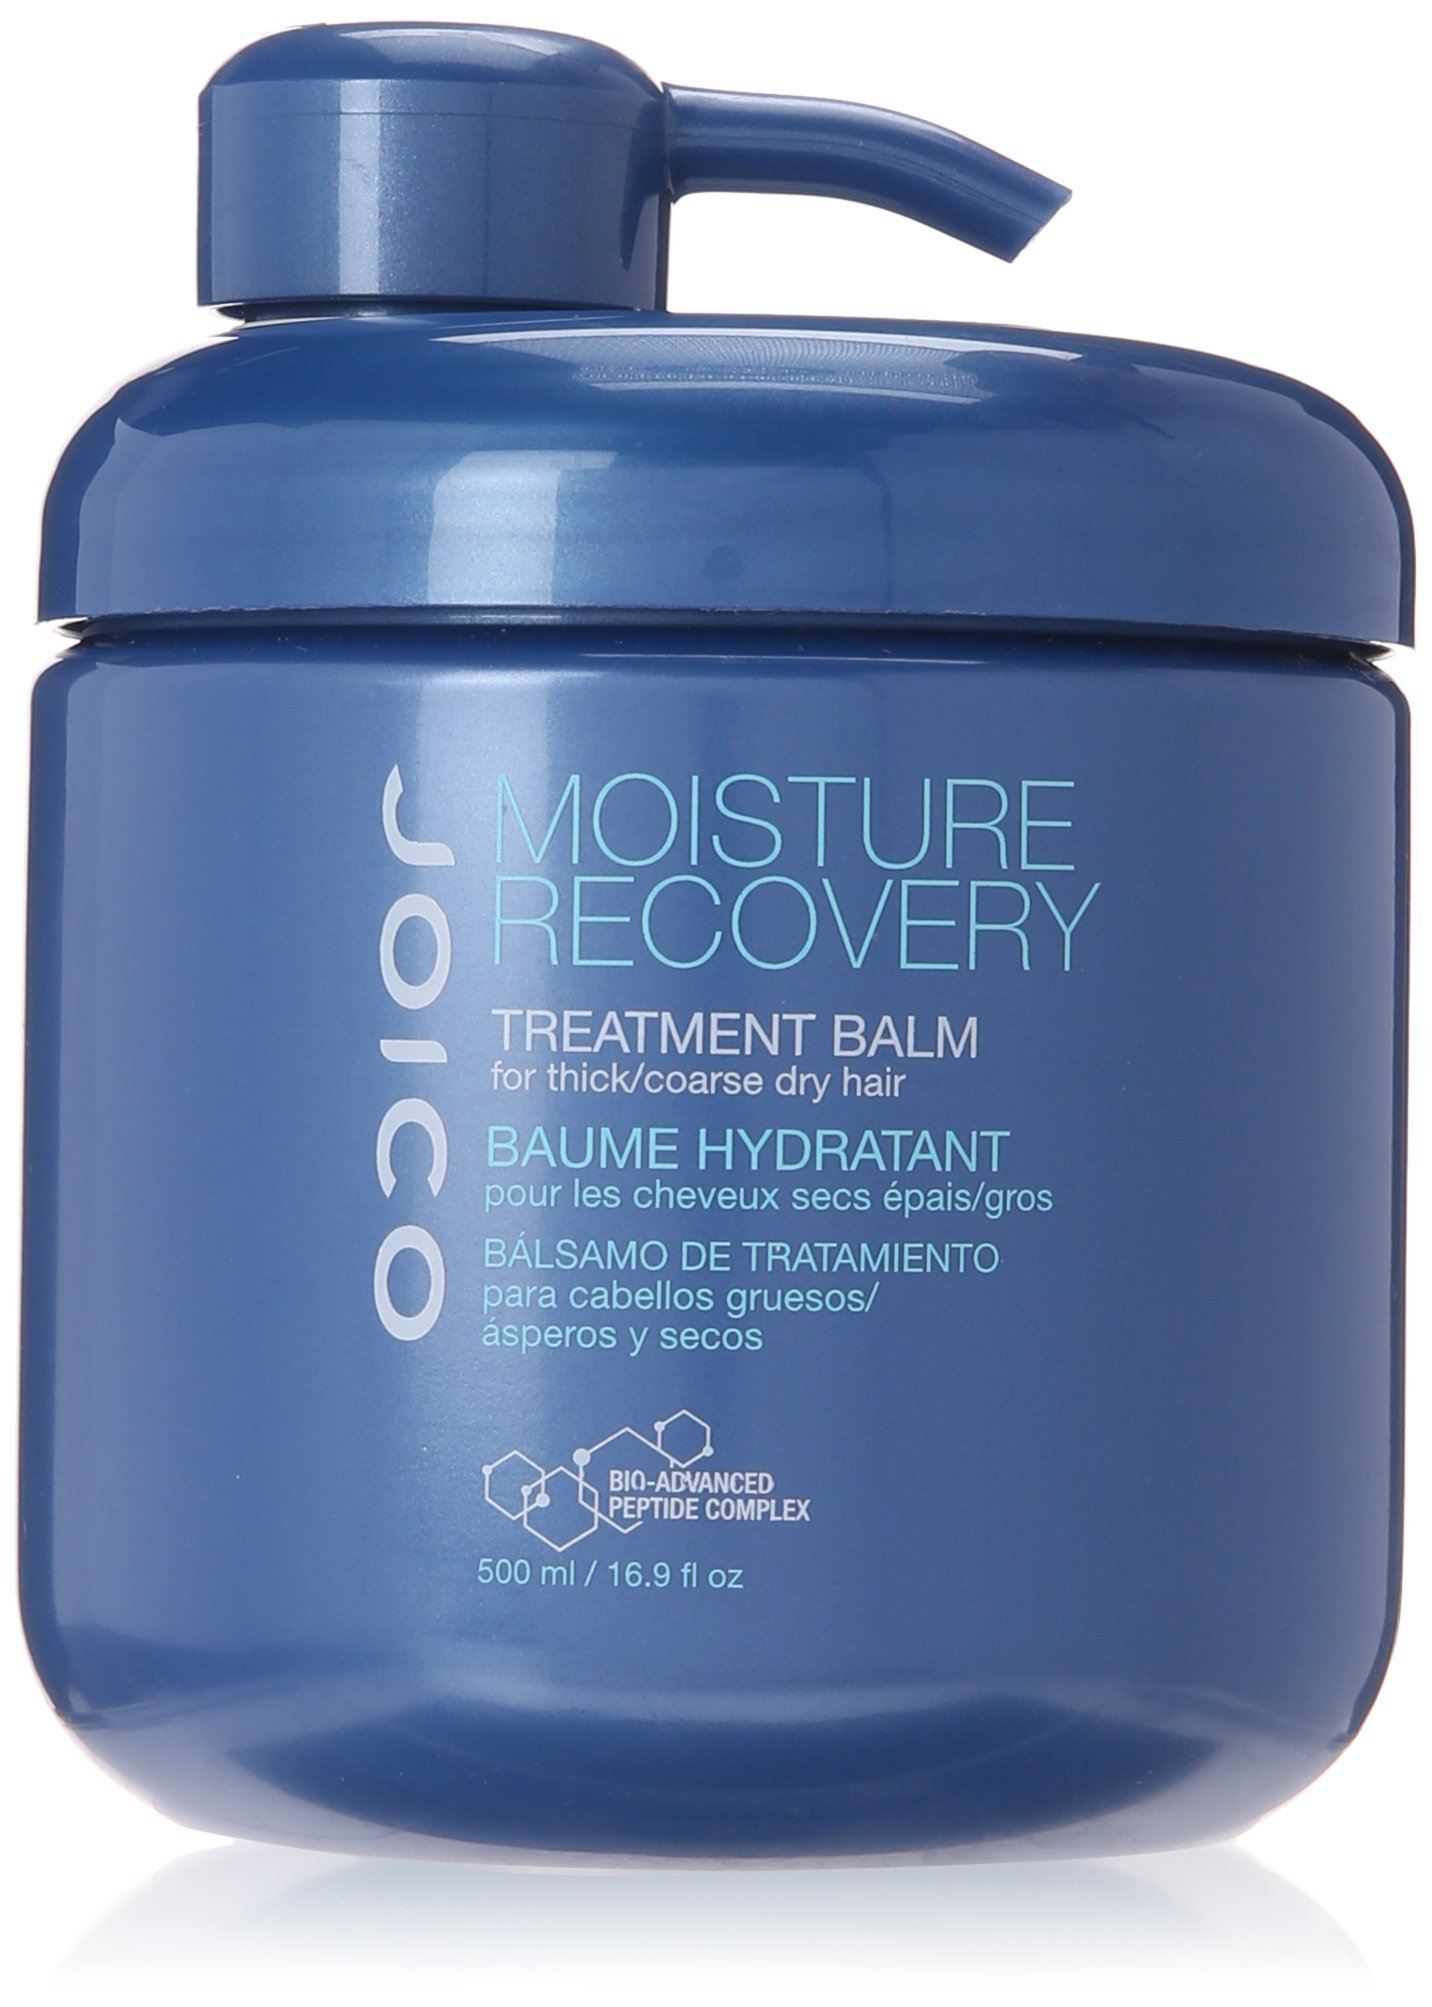 Joico Moisture Recovery Balm for Thick and Coarse Dry Hair, 16.9 fl.oz.